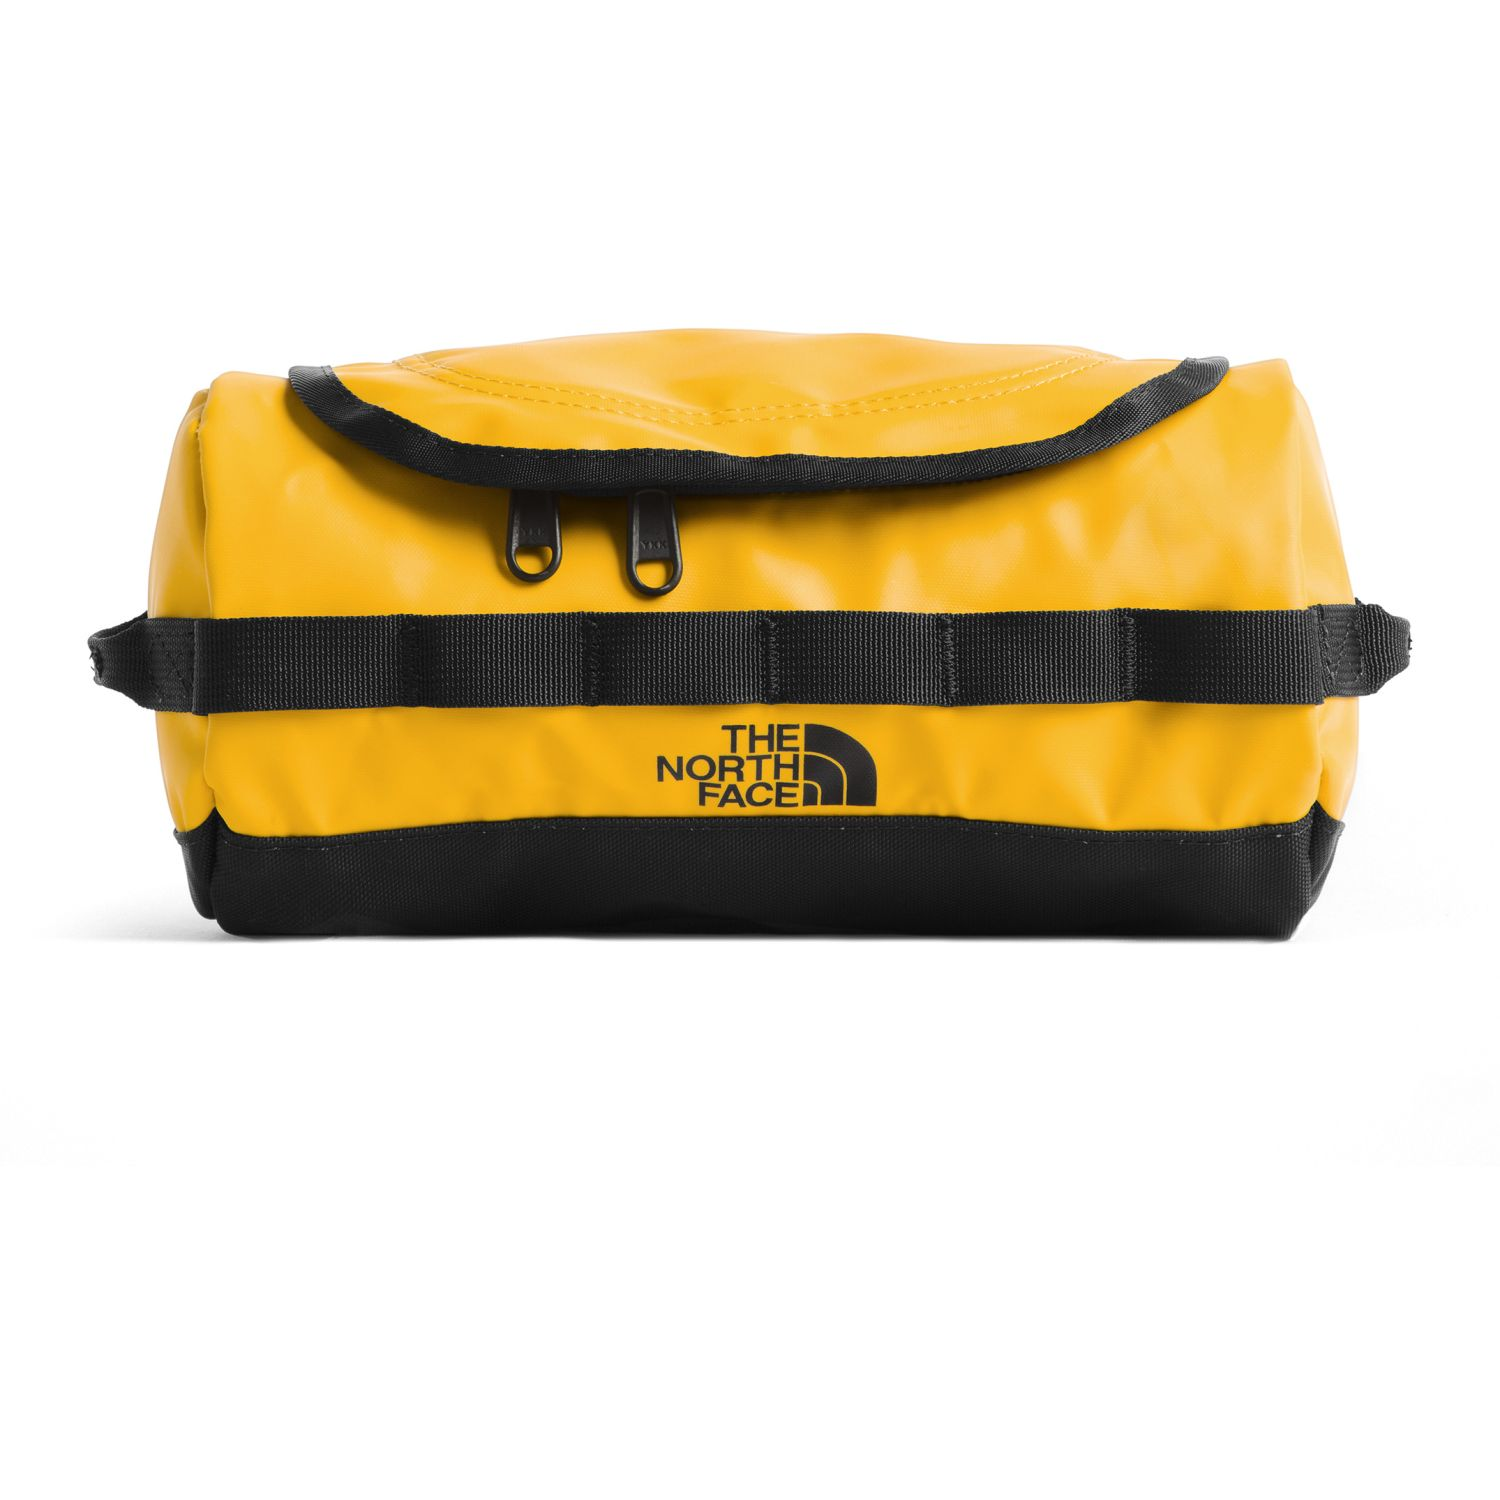 The North Face Bc Travel Canister- S Amarillo Neceseres